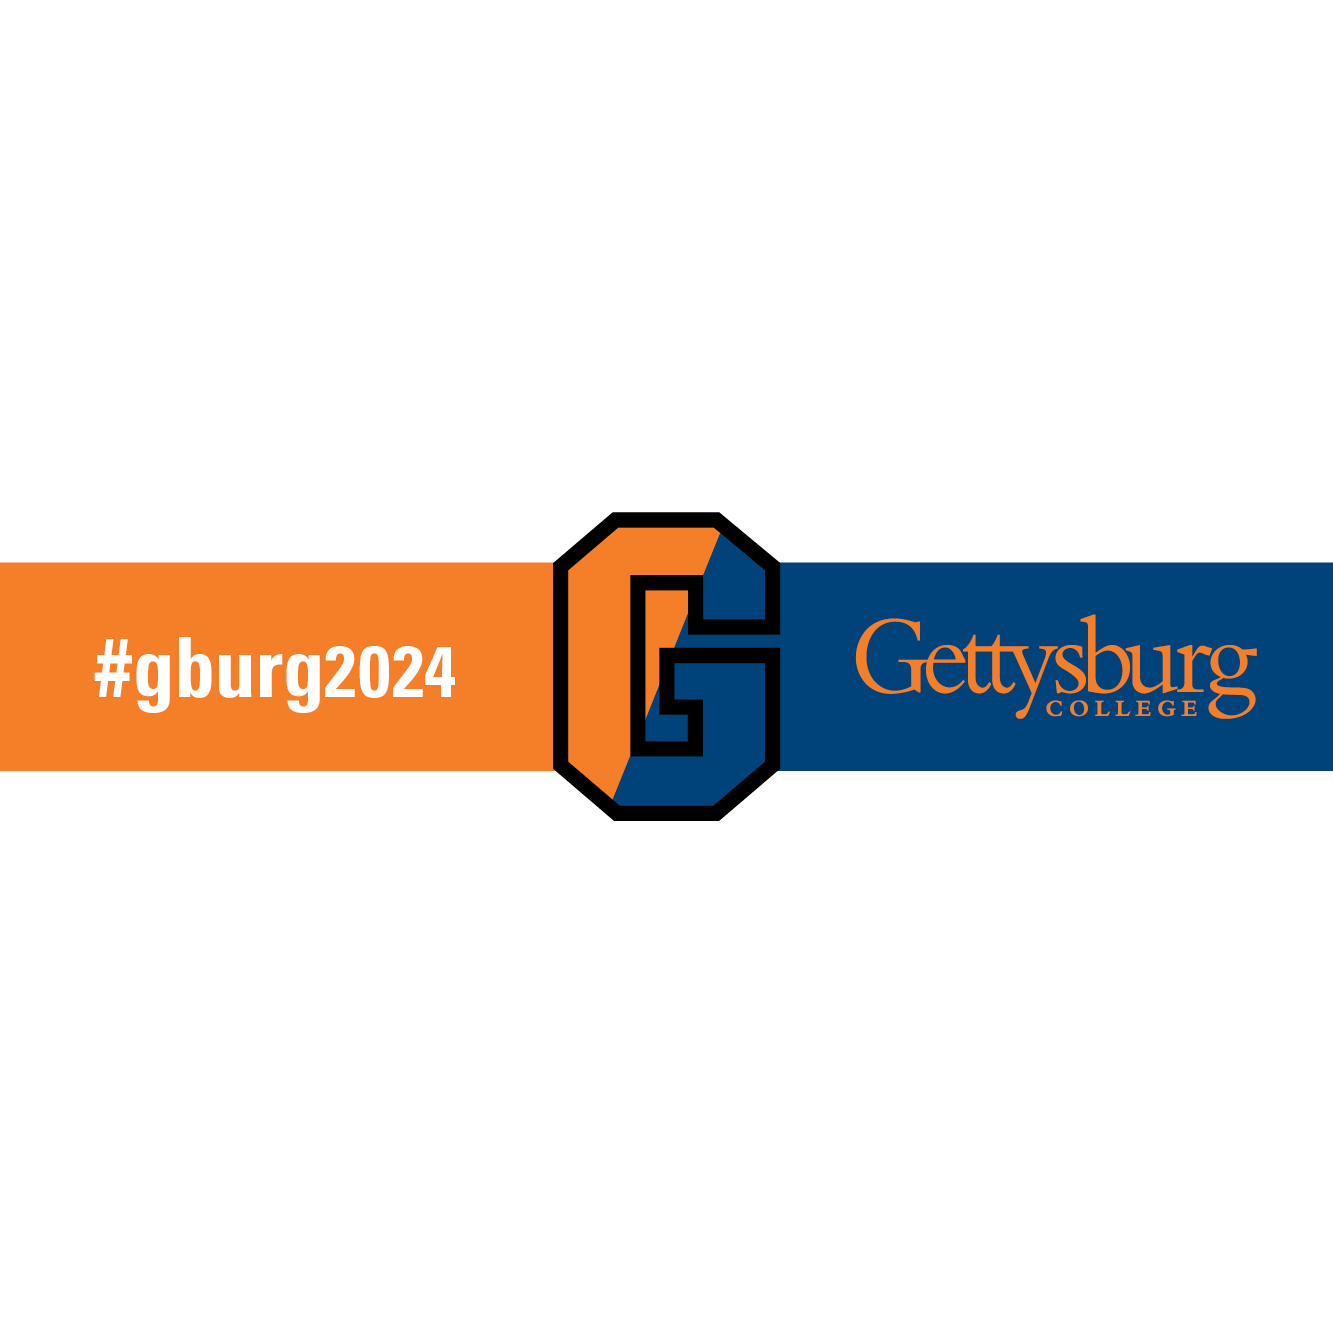 Gettysburg College facebook photo frame with black outline and transparent background